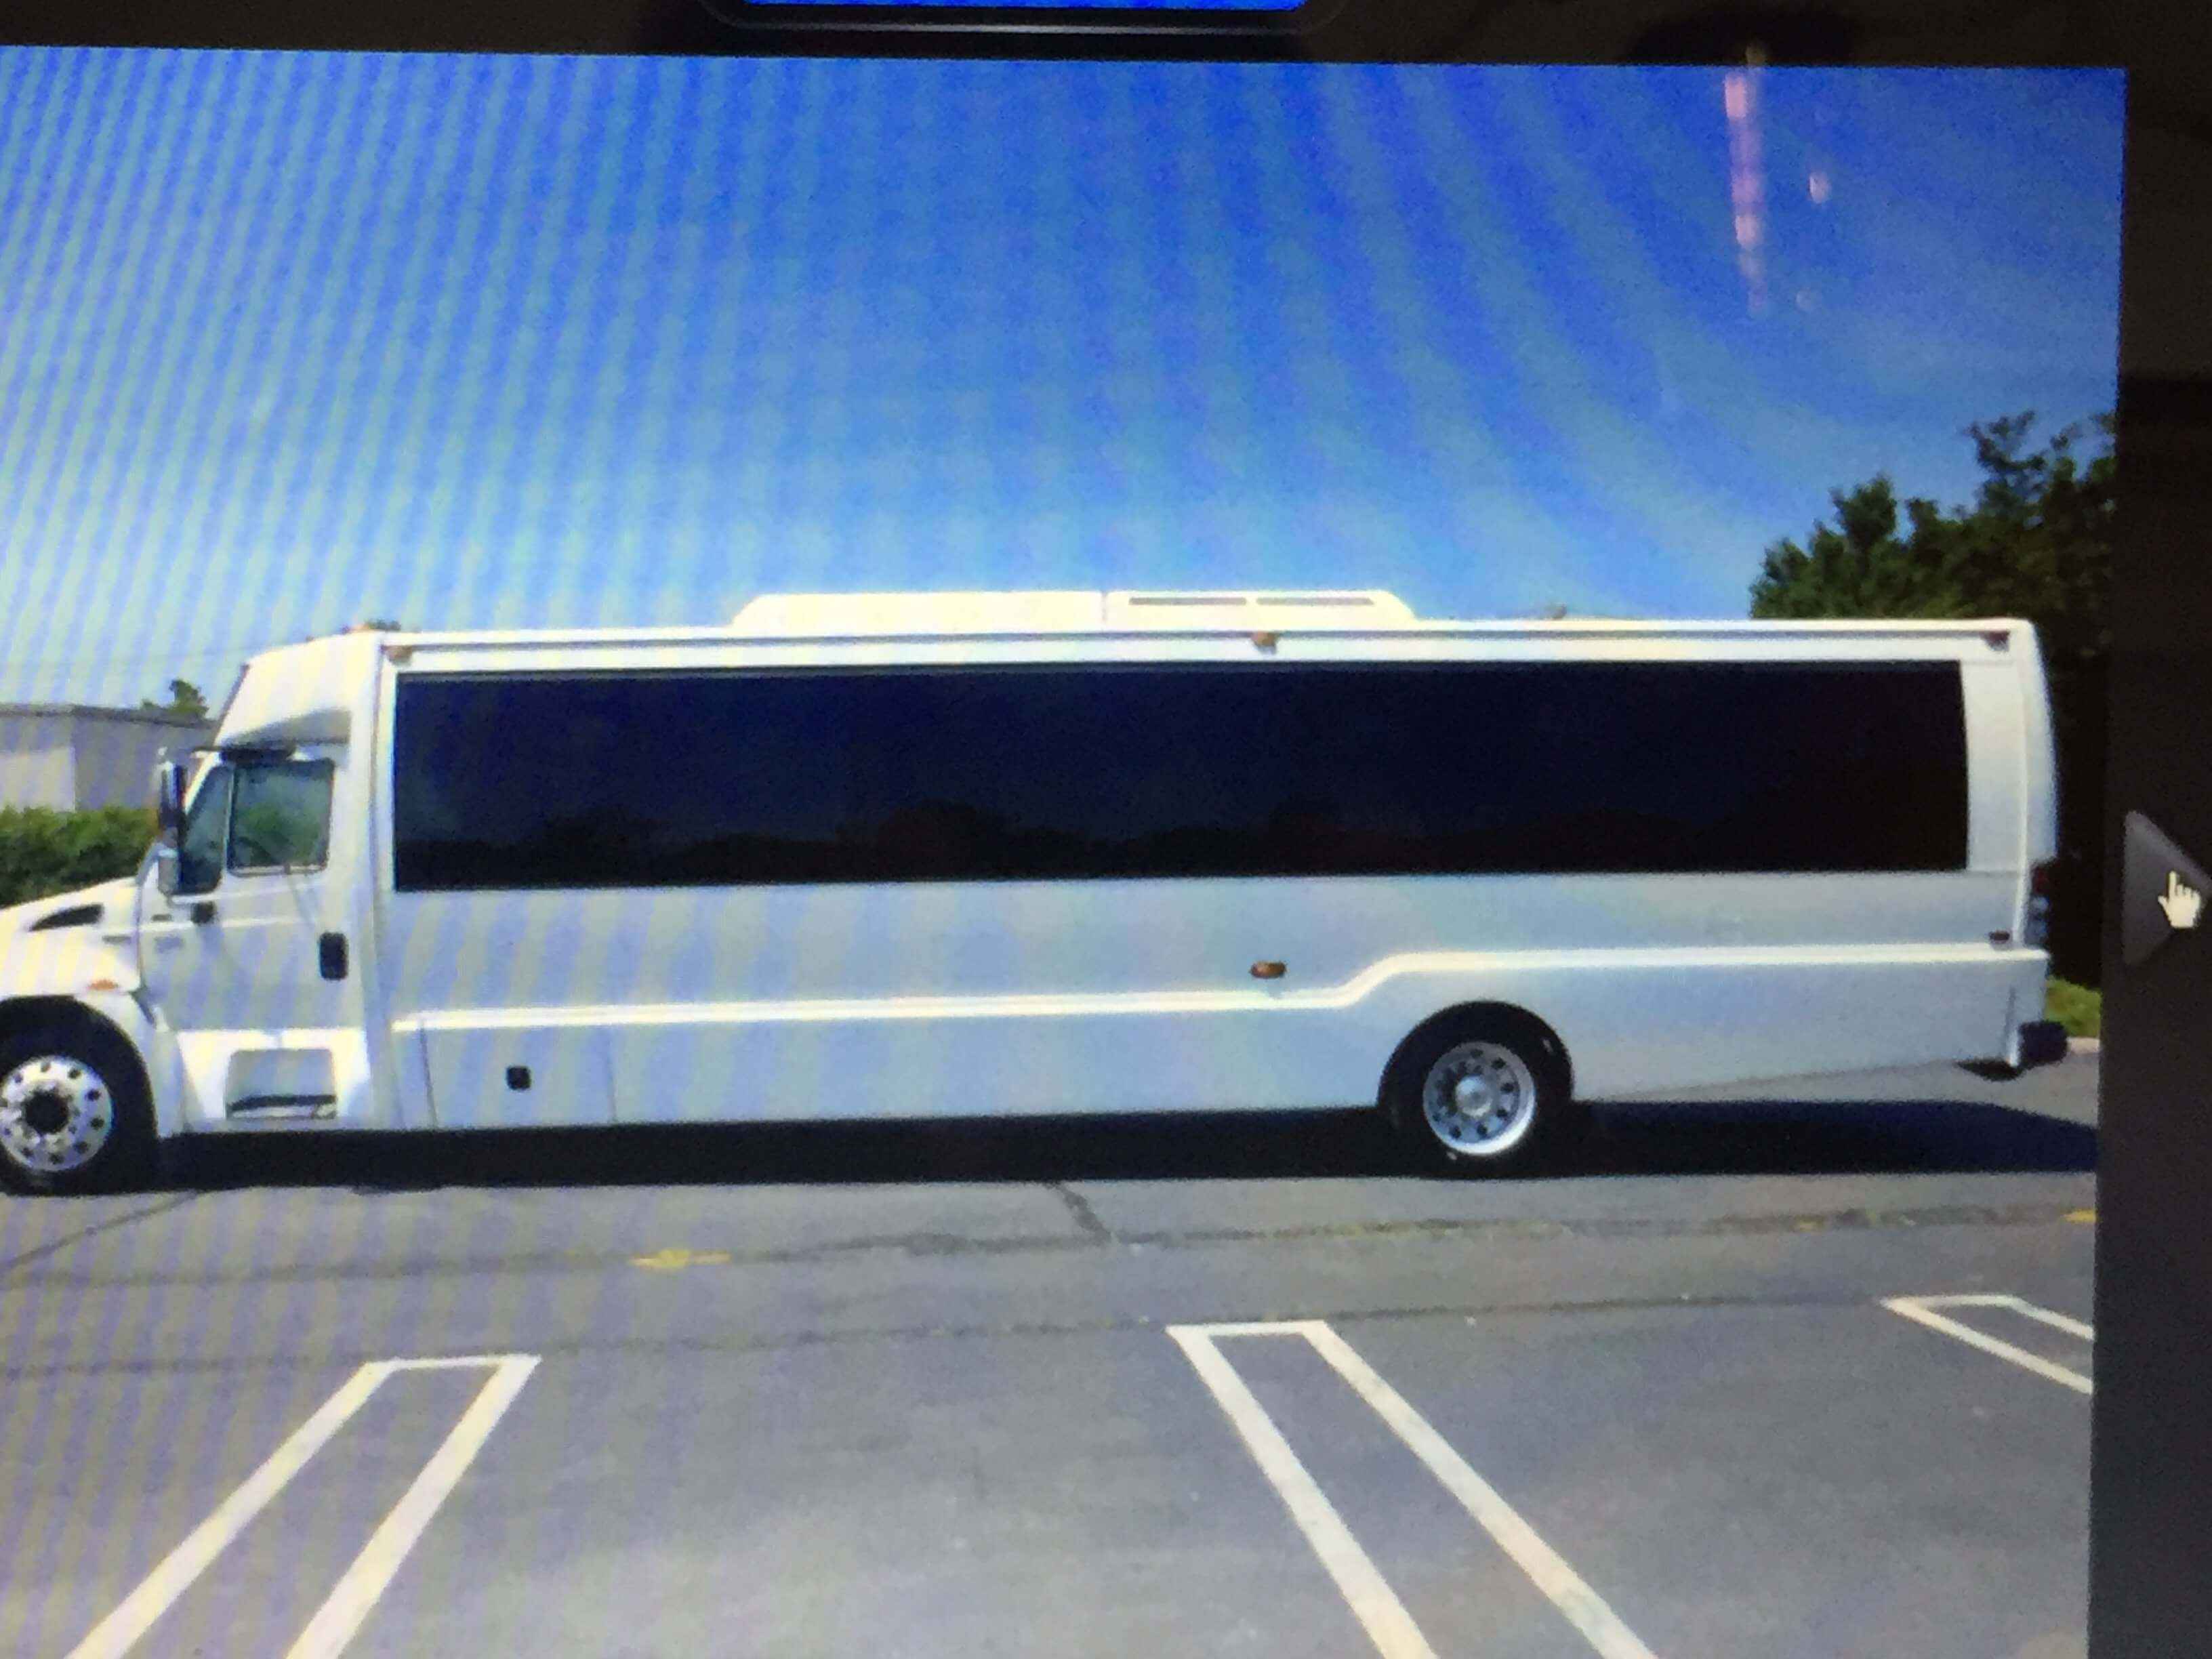 Check out our new party bus!